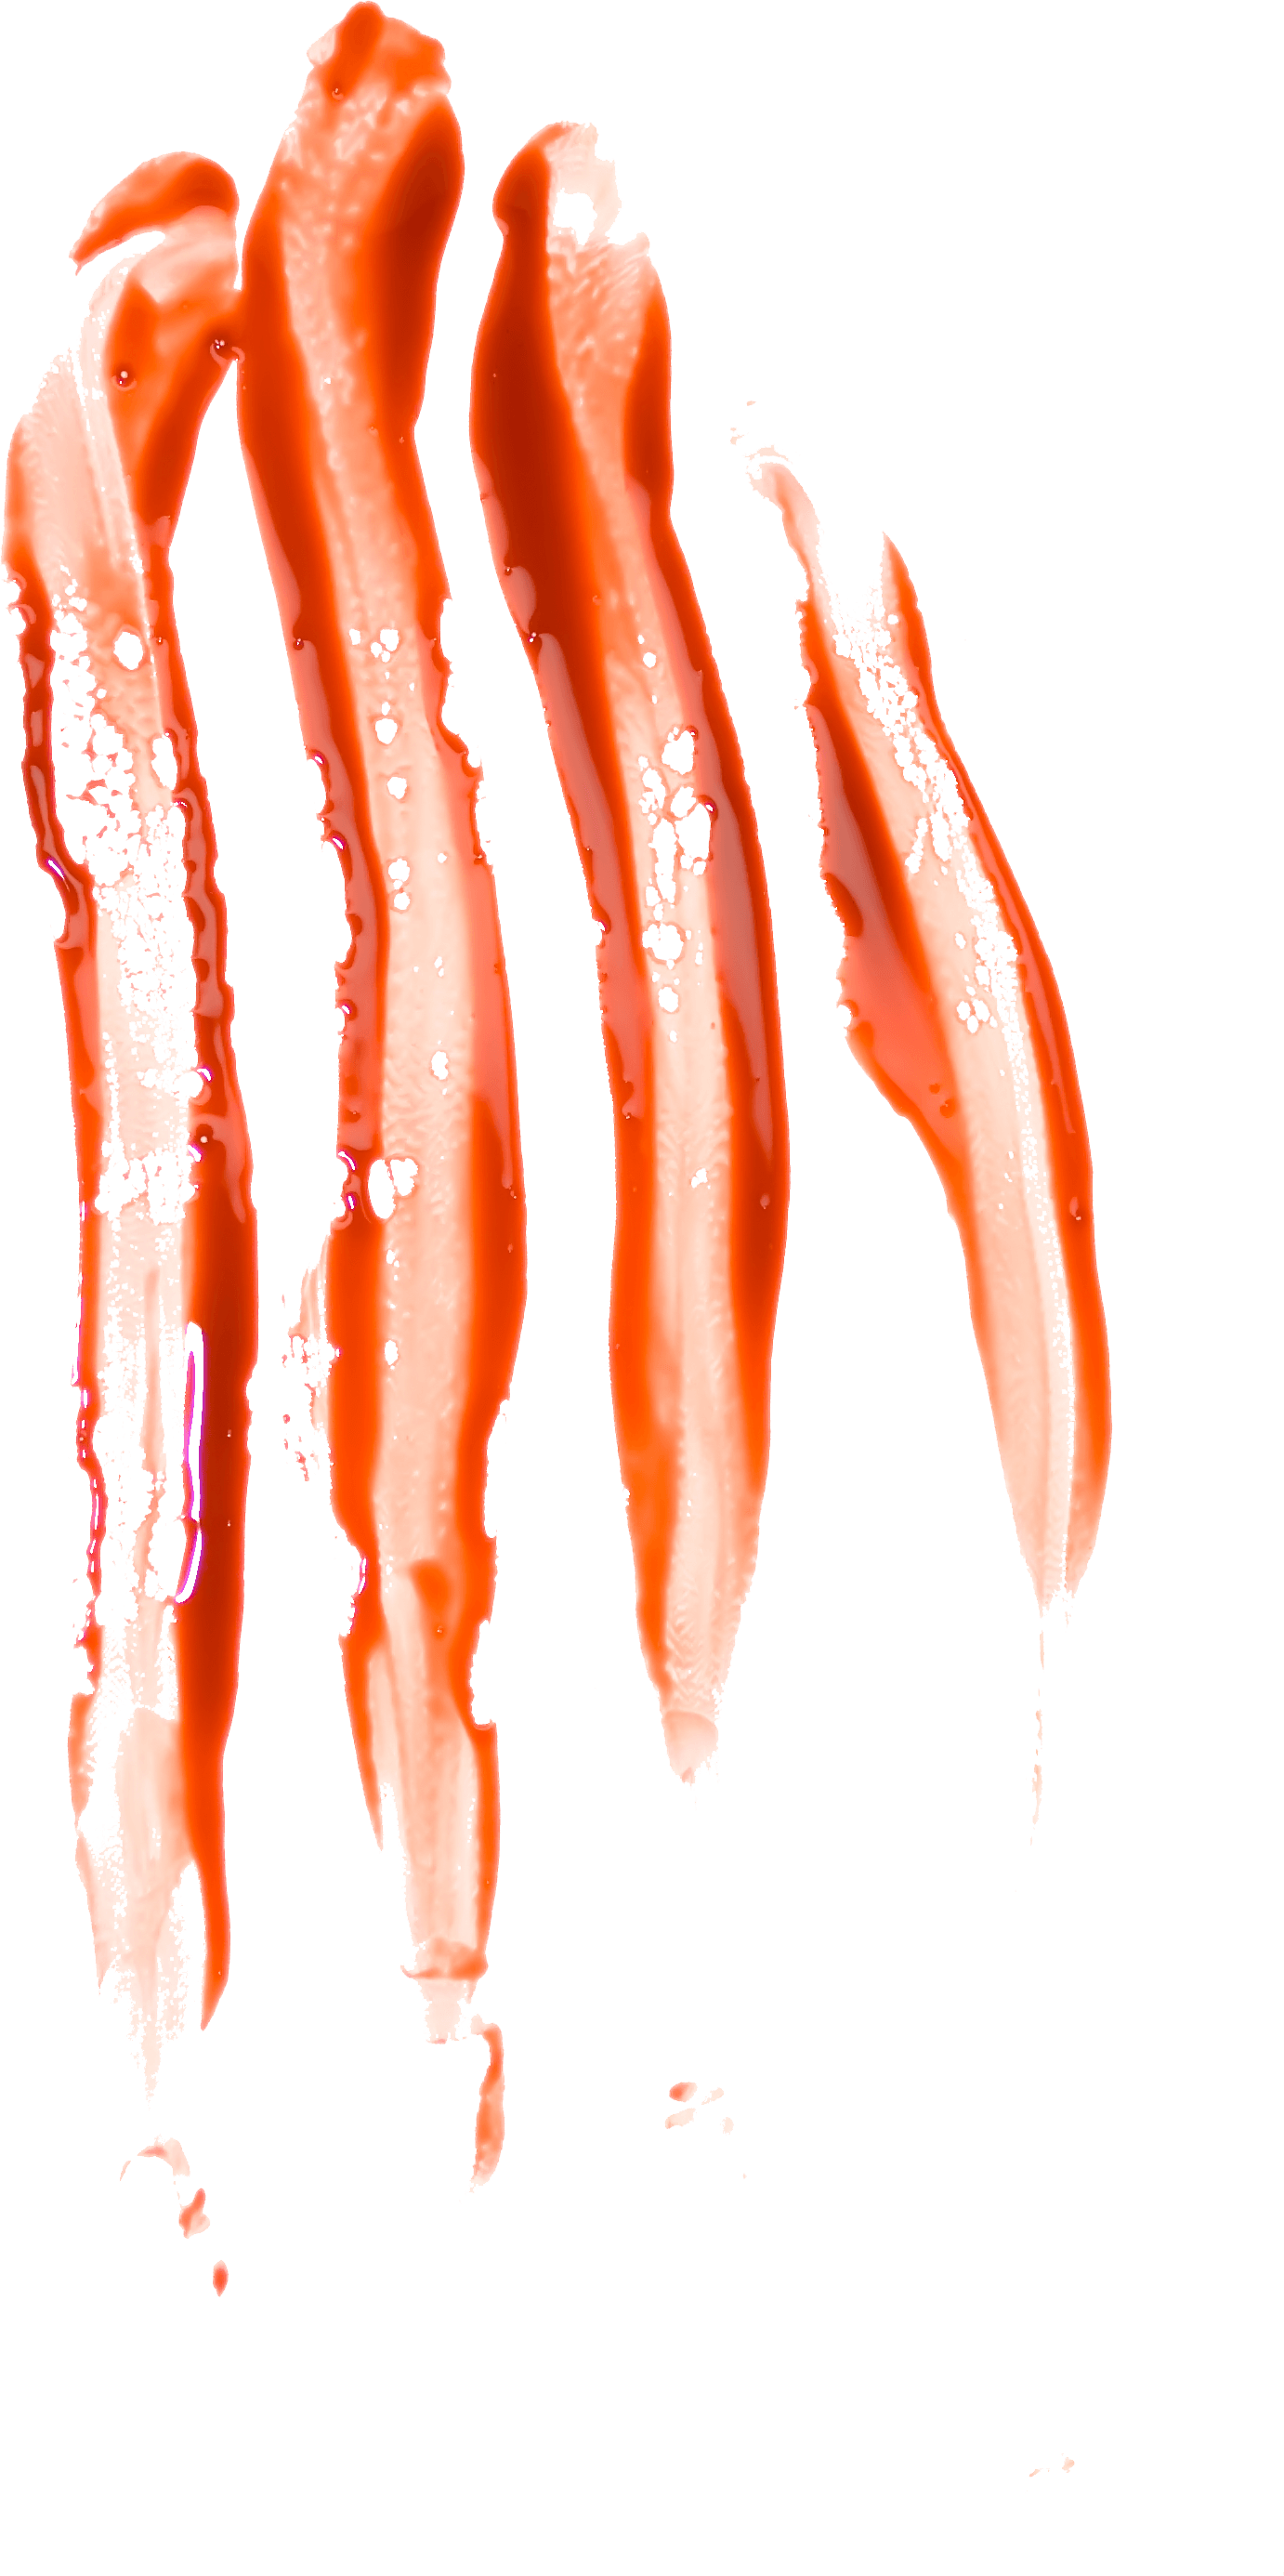 Blood transparent png. Images stickpng finger scratches